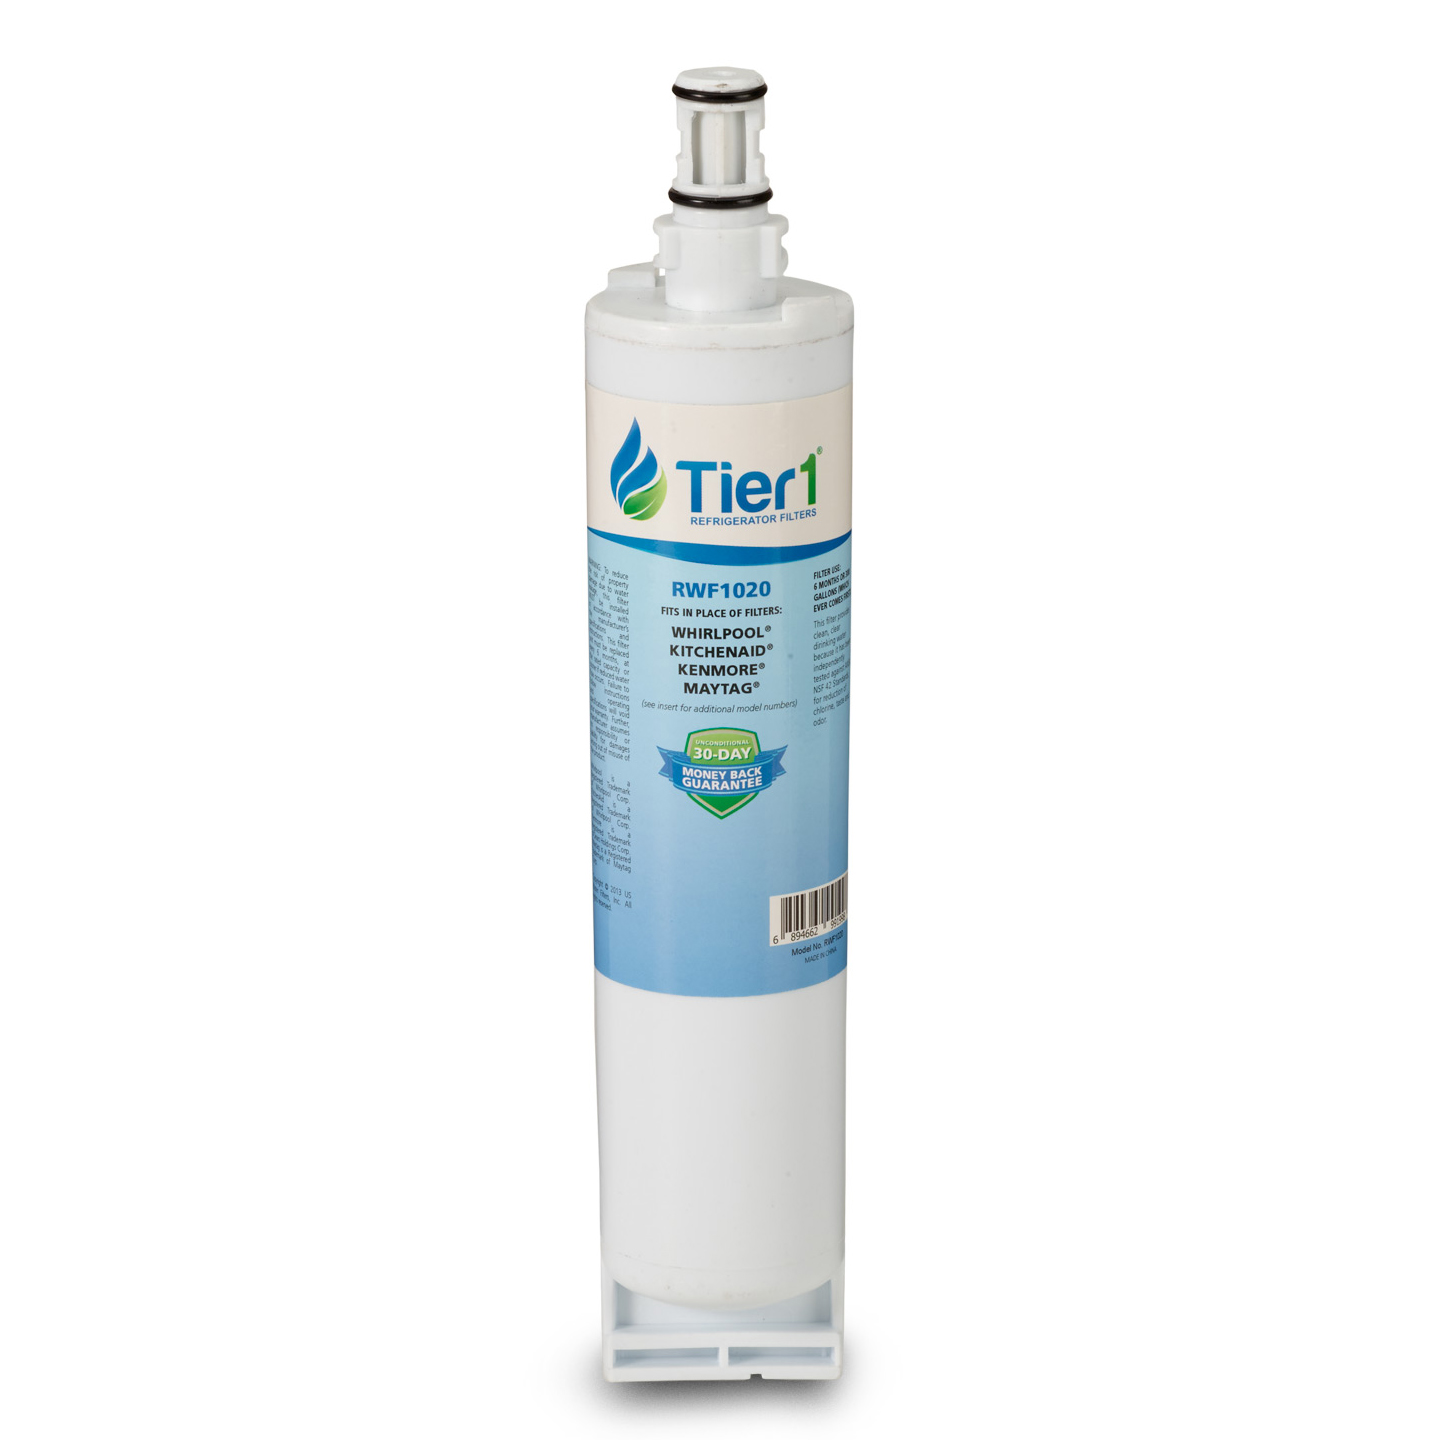 Tier1 EveryDrop EDR5RXD1 Whirlpool 4396508/4396510 Refrigerator Water Filter Replacement Comparable TIER1-RWF1020